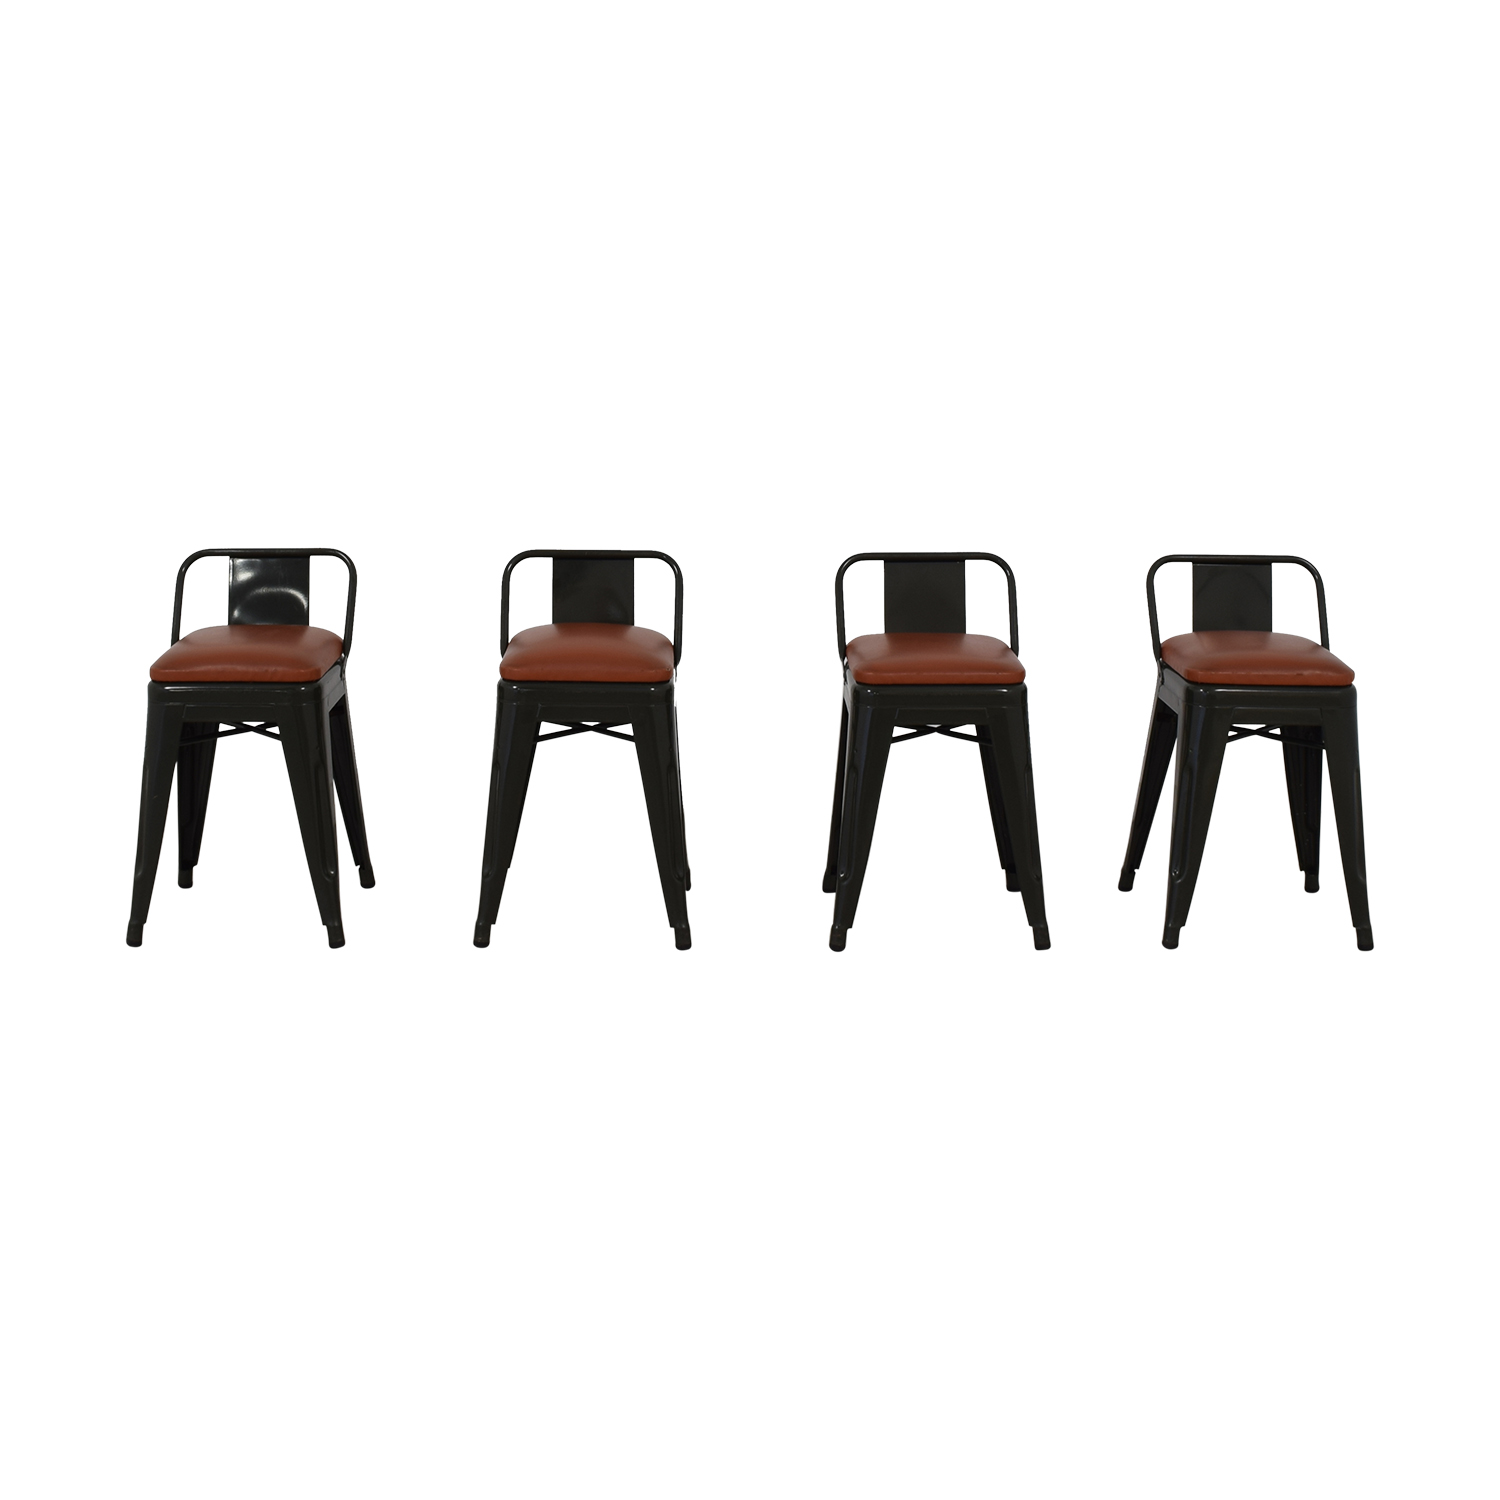 Tolix Tolix Industrial Stools on sale